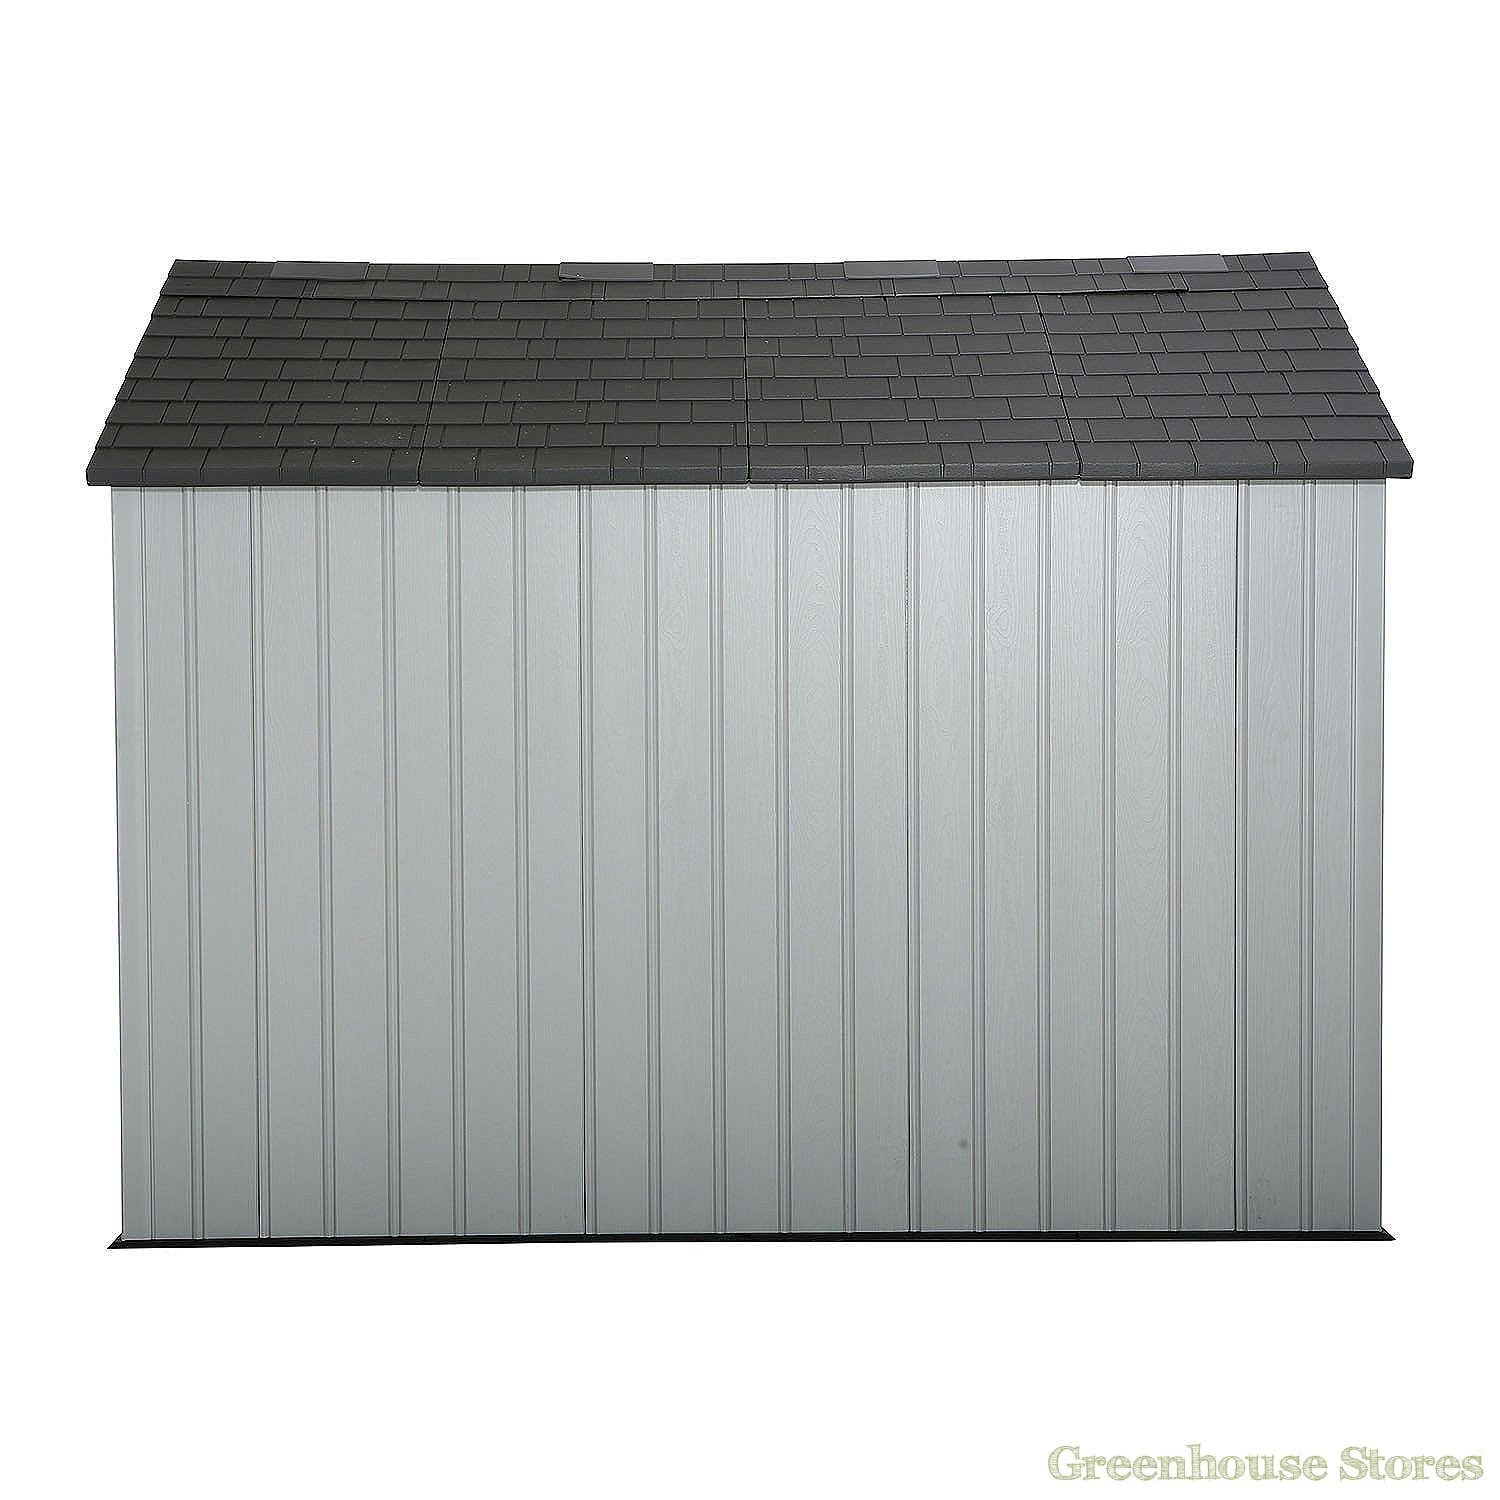 Lifetime 10x8 Plastic Shed New Edition Greenhouse Stores